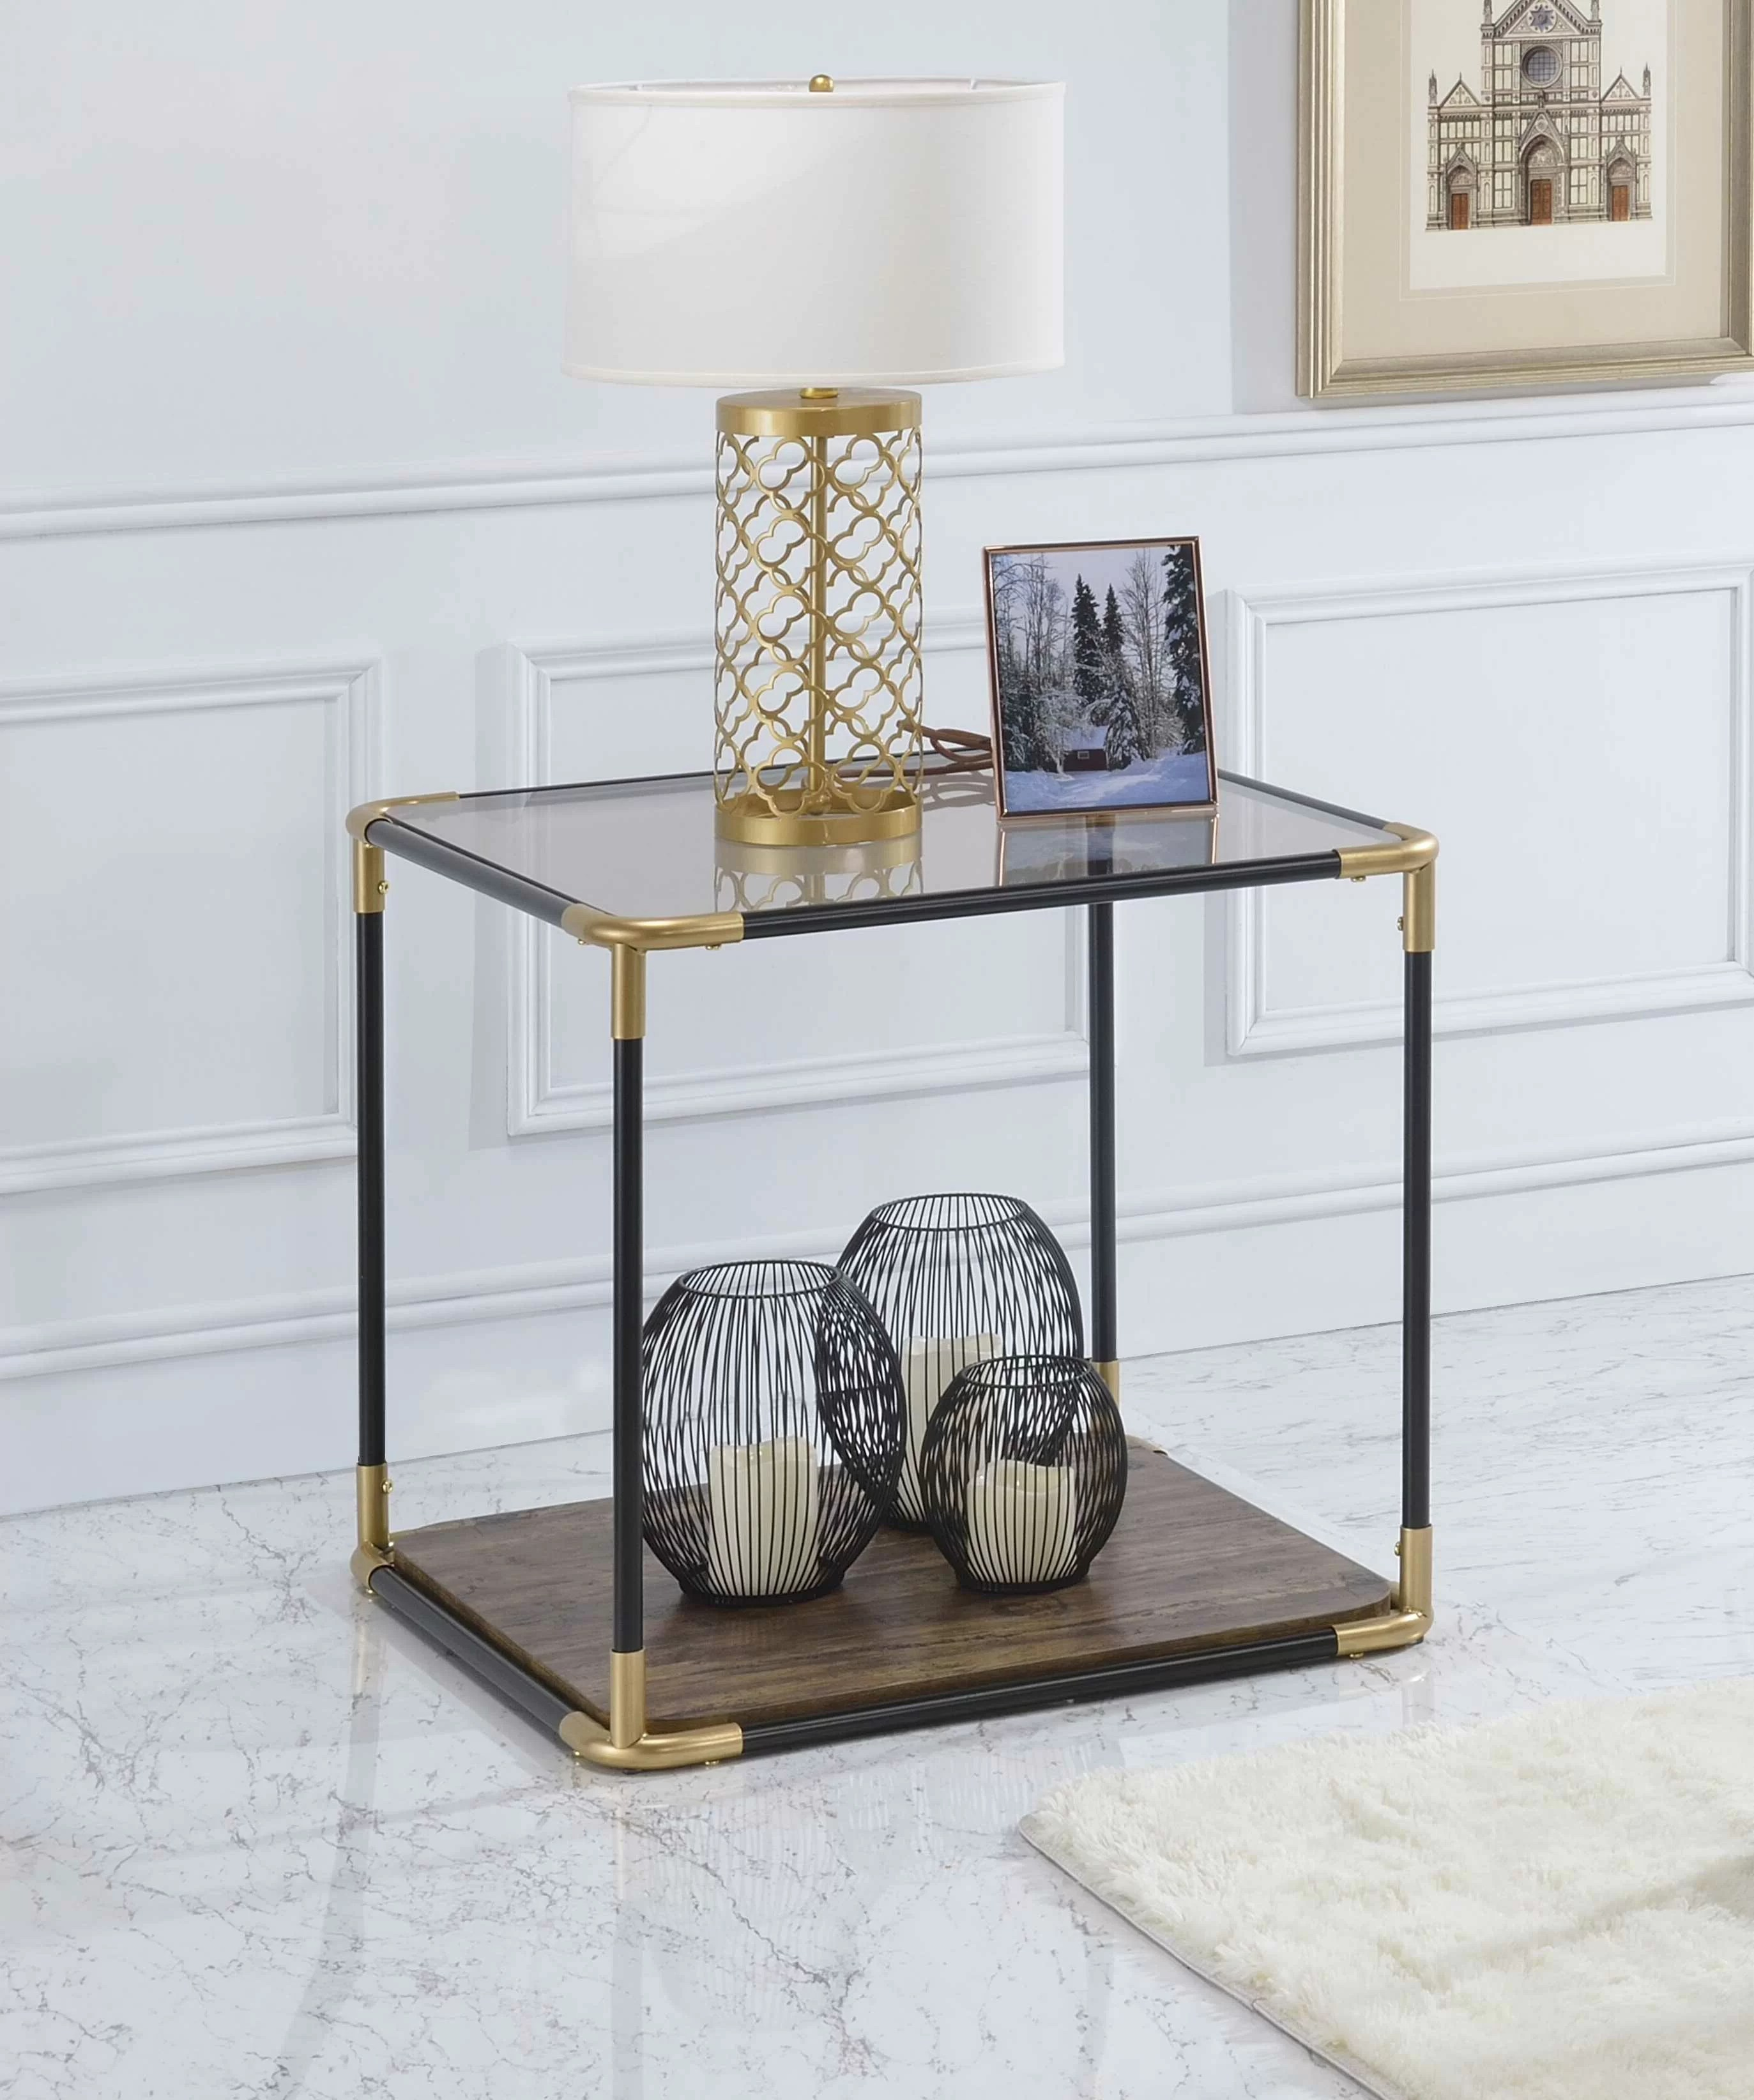 Mercer41 Ahner Glass Top Floor Shelf End Table With Storage Wayfair